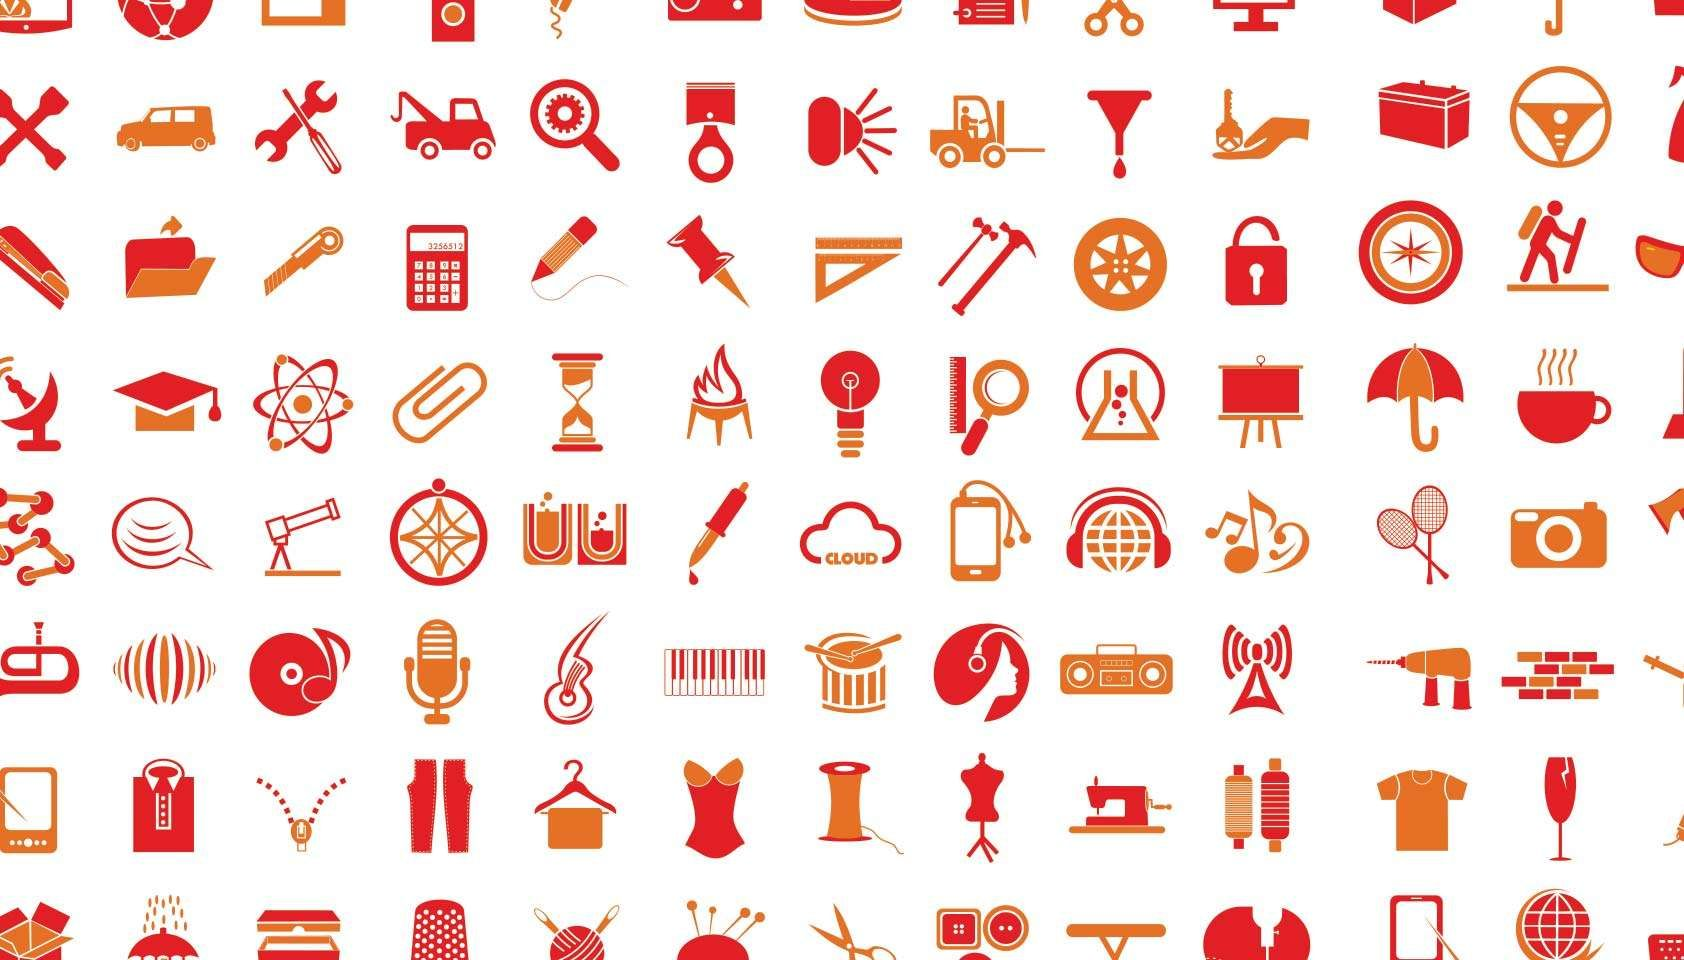 Free download 200 vector icons Vector icons, Web design